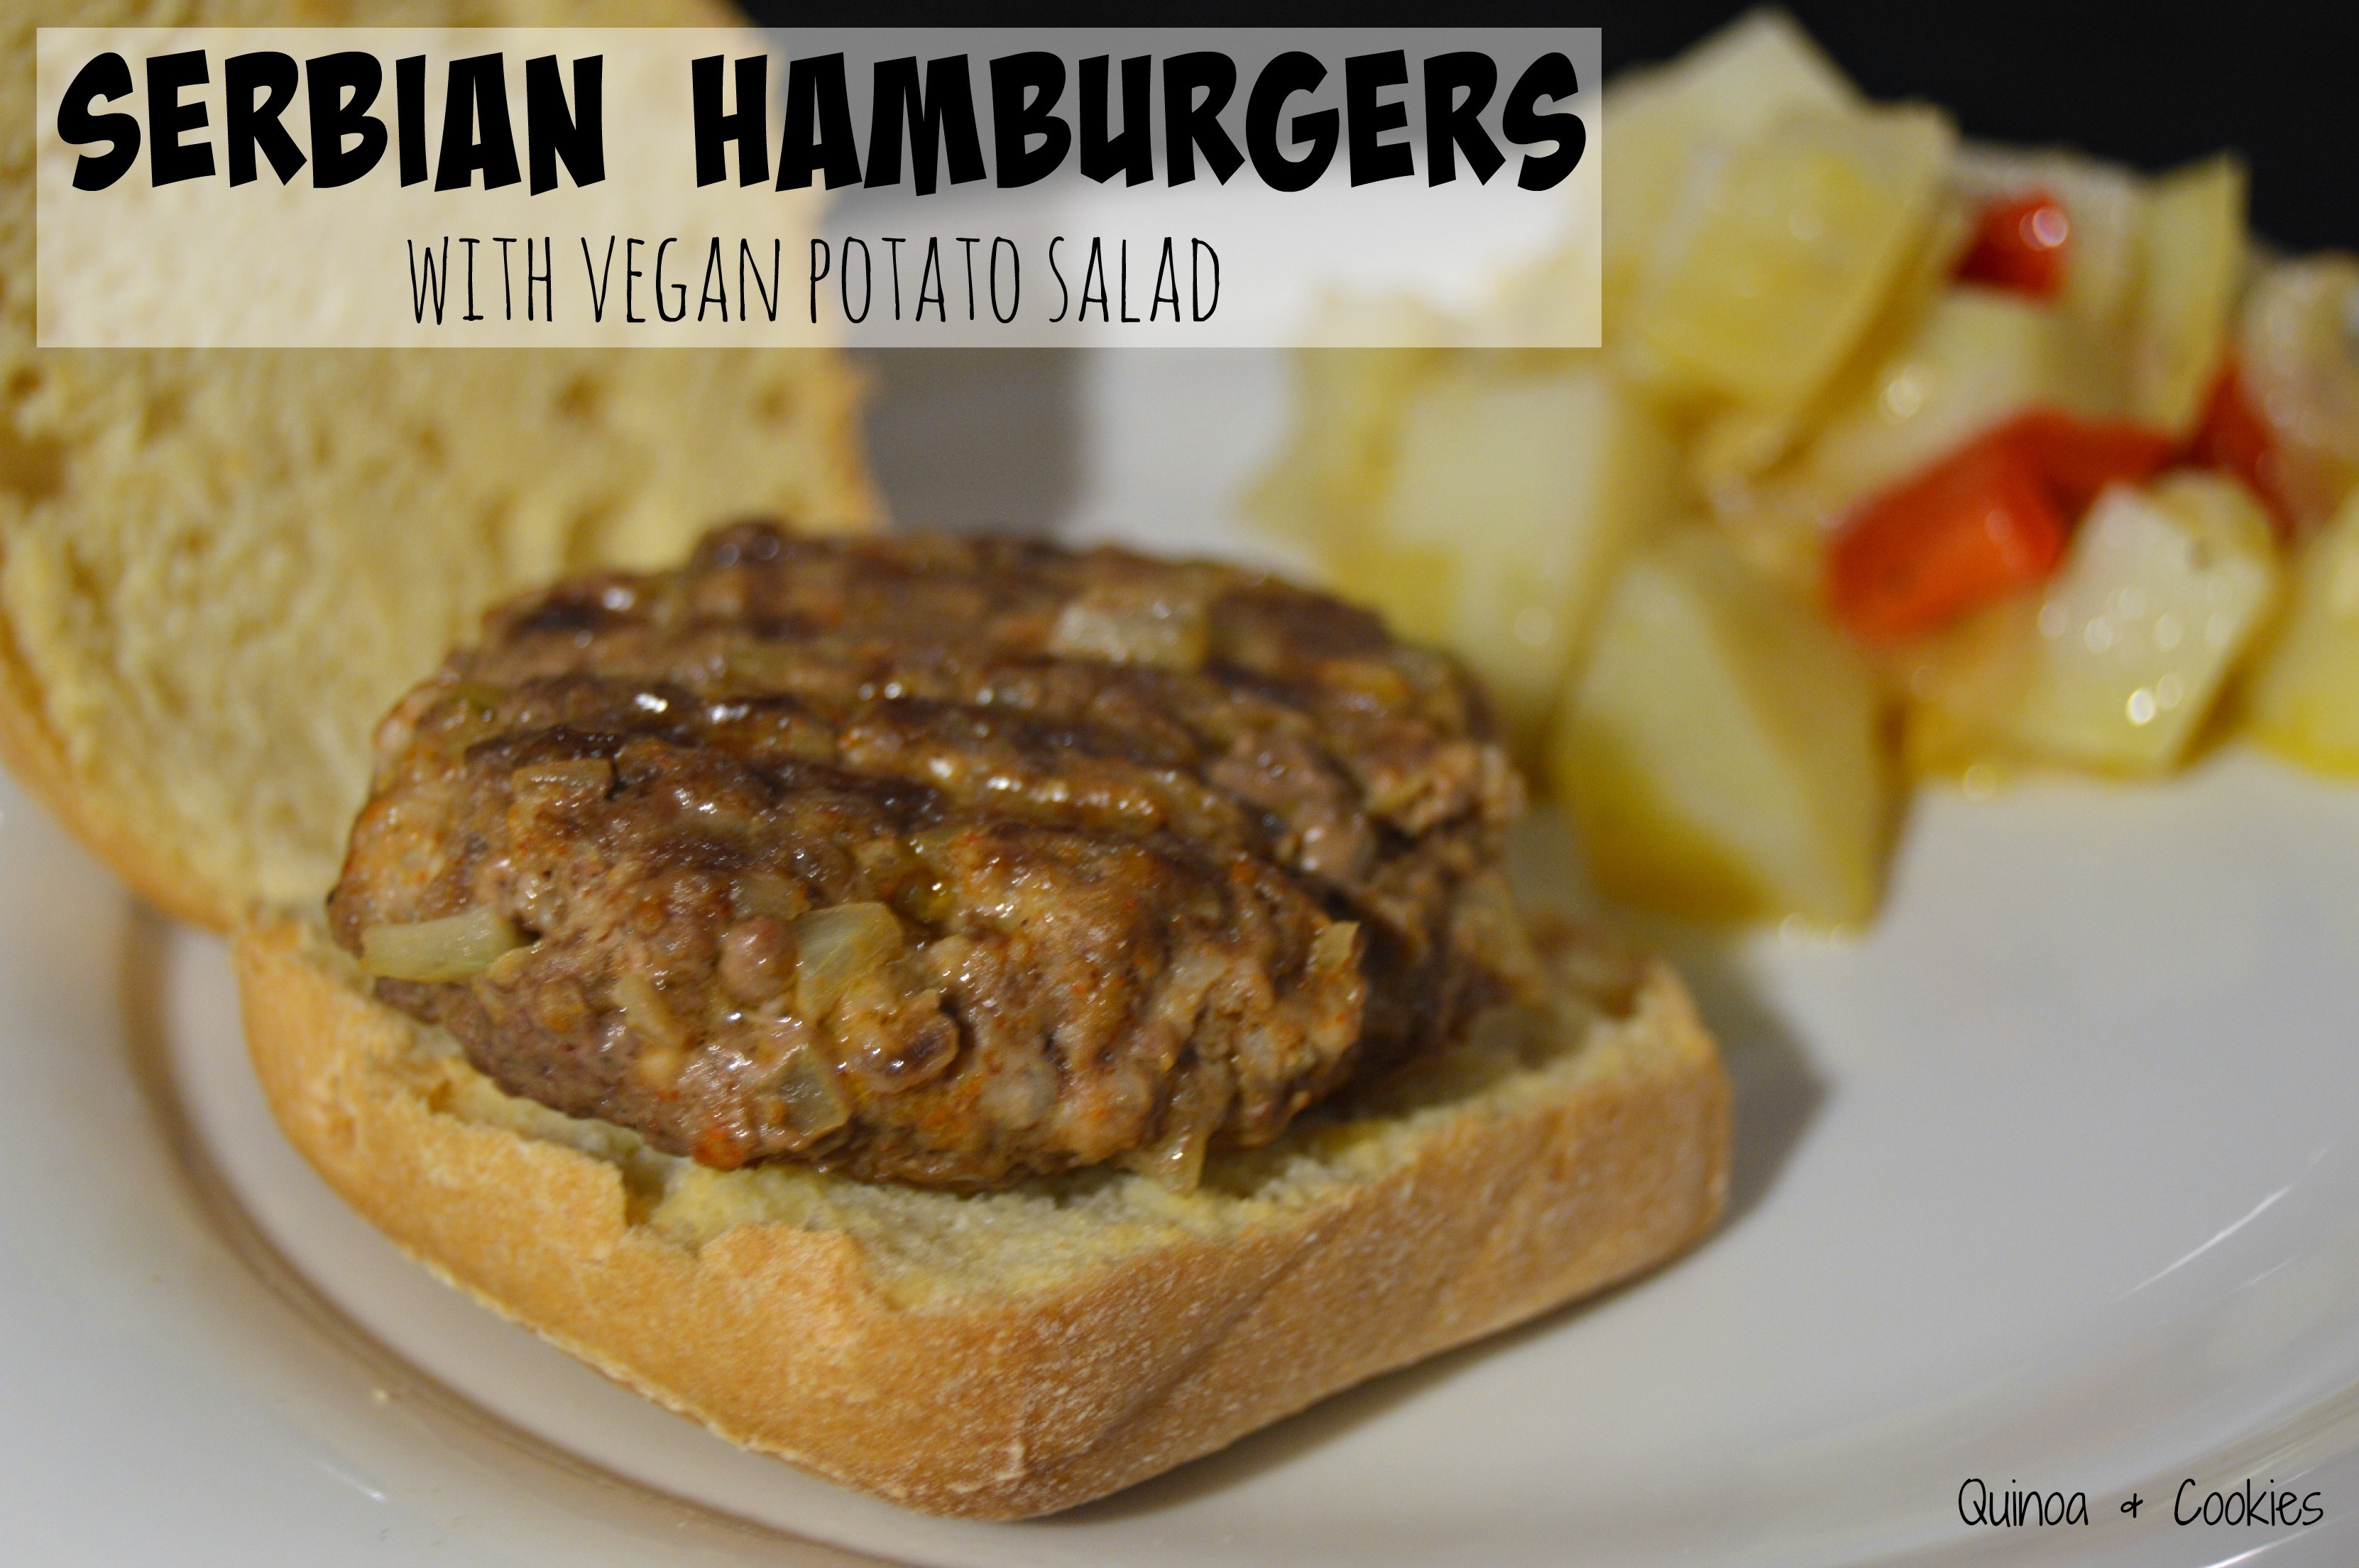 S is for Serbia: Pljeskavica (Hamburgers) with Vegan Potato Salad (Gluten Free)